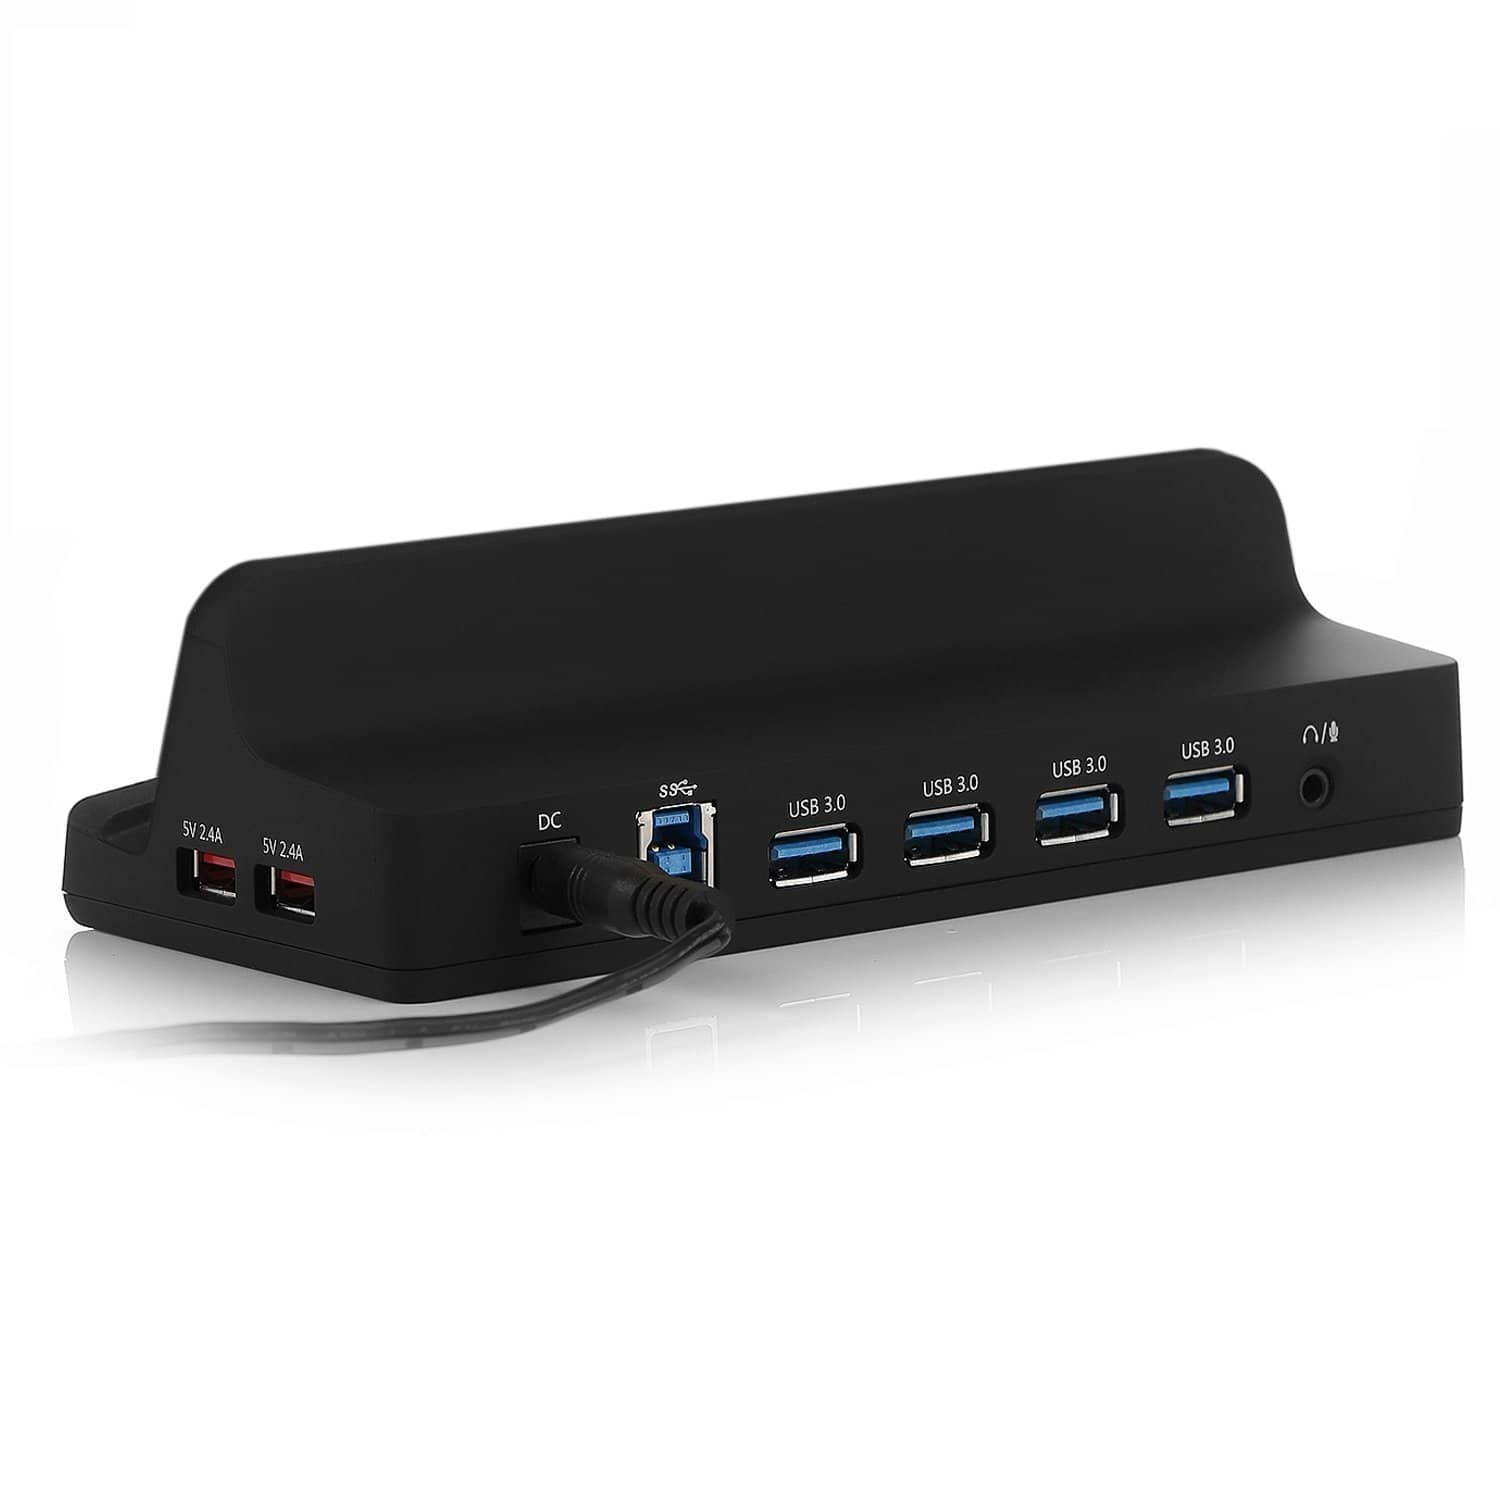 Bestek USB 3.0 Hub (12v/3a) + 2 USB Power Ports + Dock $10